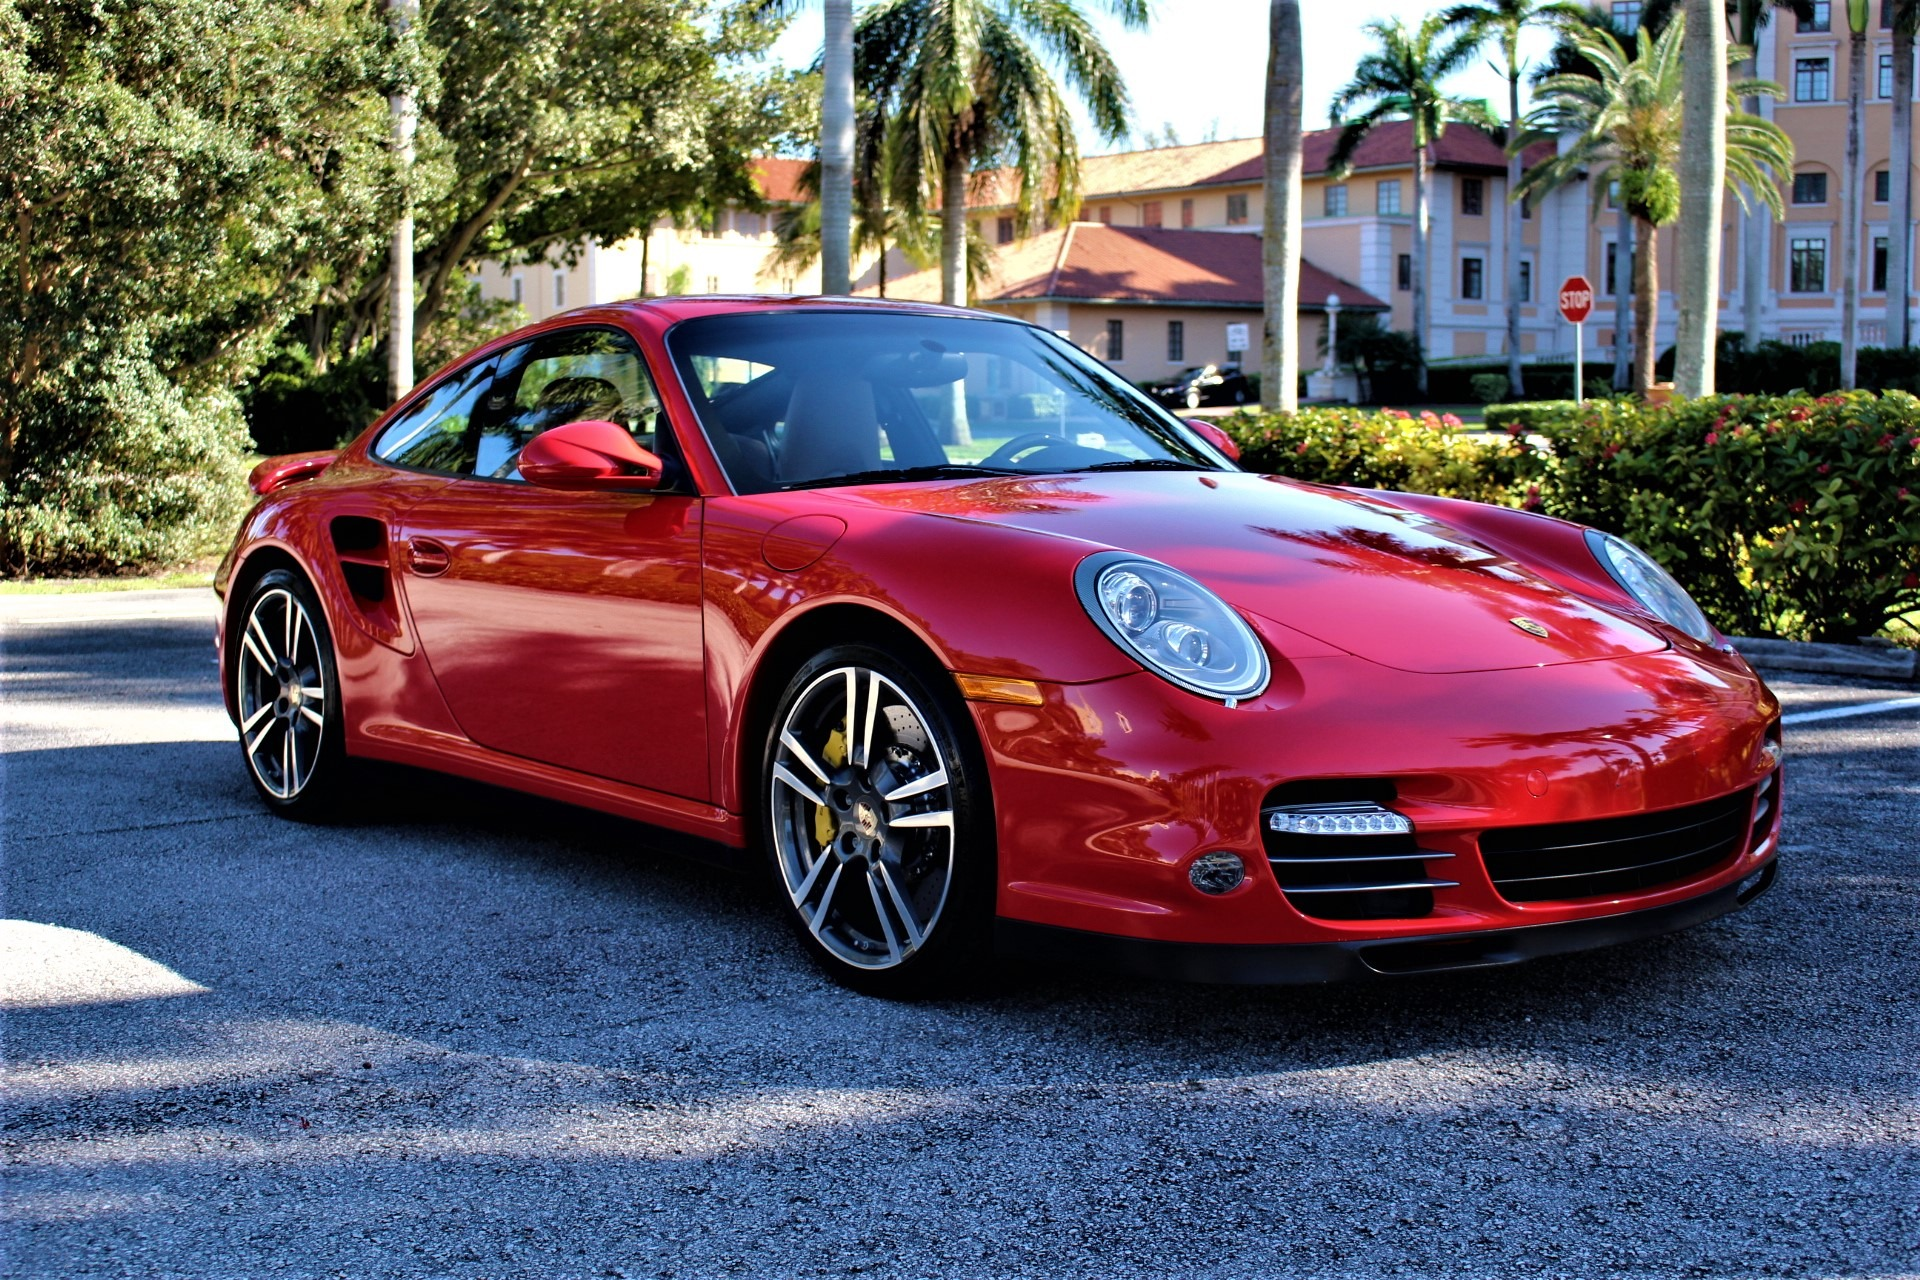 Used 2012 Porsche 911 Turbo for sale $94,850 at The Gables Sports Cars in Miami FL 33146 4